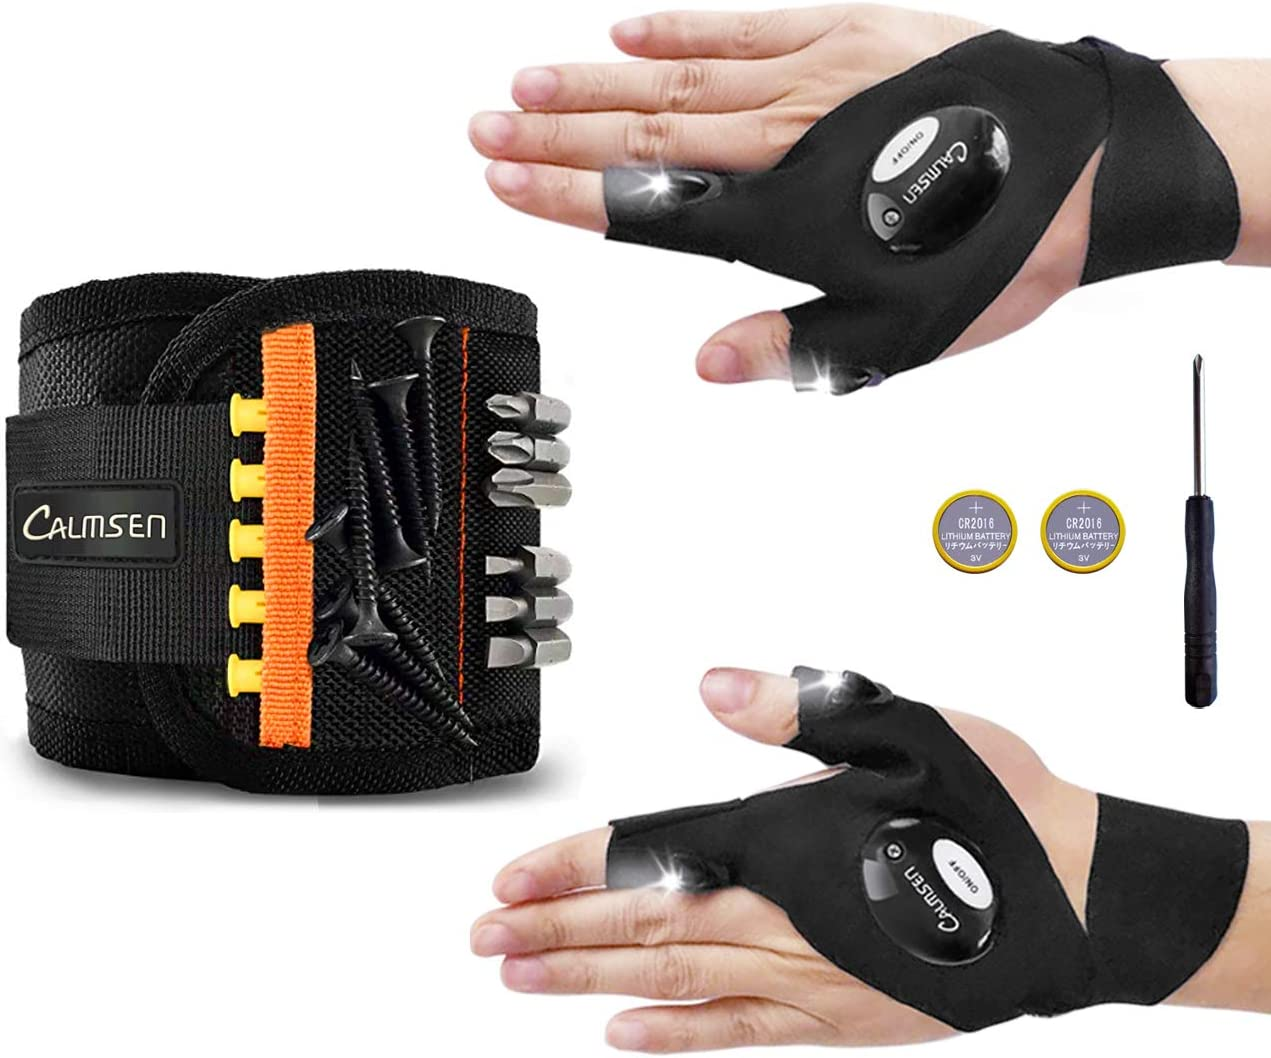 Calmsen Magnetic Wristband with 1 Pair Gloves New wholesale arrival - LED Flashlight p